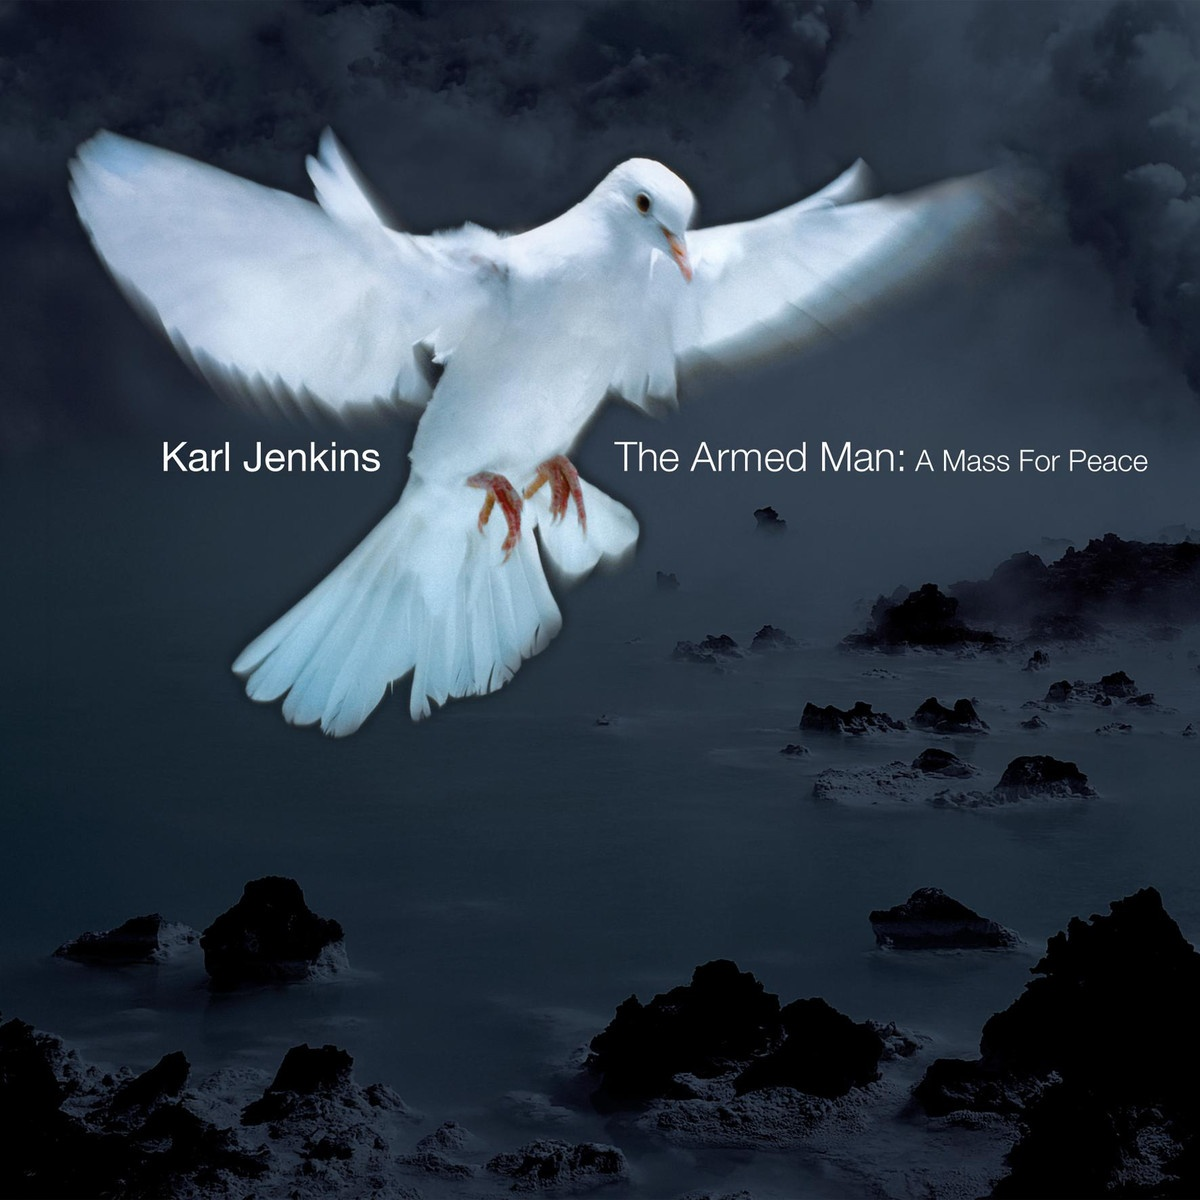 лучшая цена Karl Jenkins Karl Jenkins - The Armed Man: A Mass For Peace (2 Lp, 180 Gr)